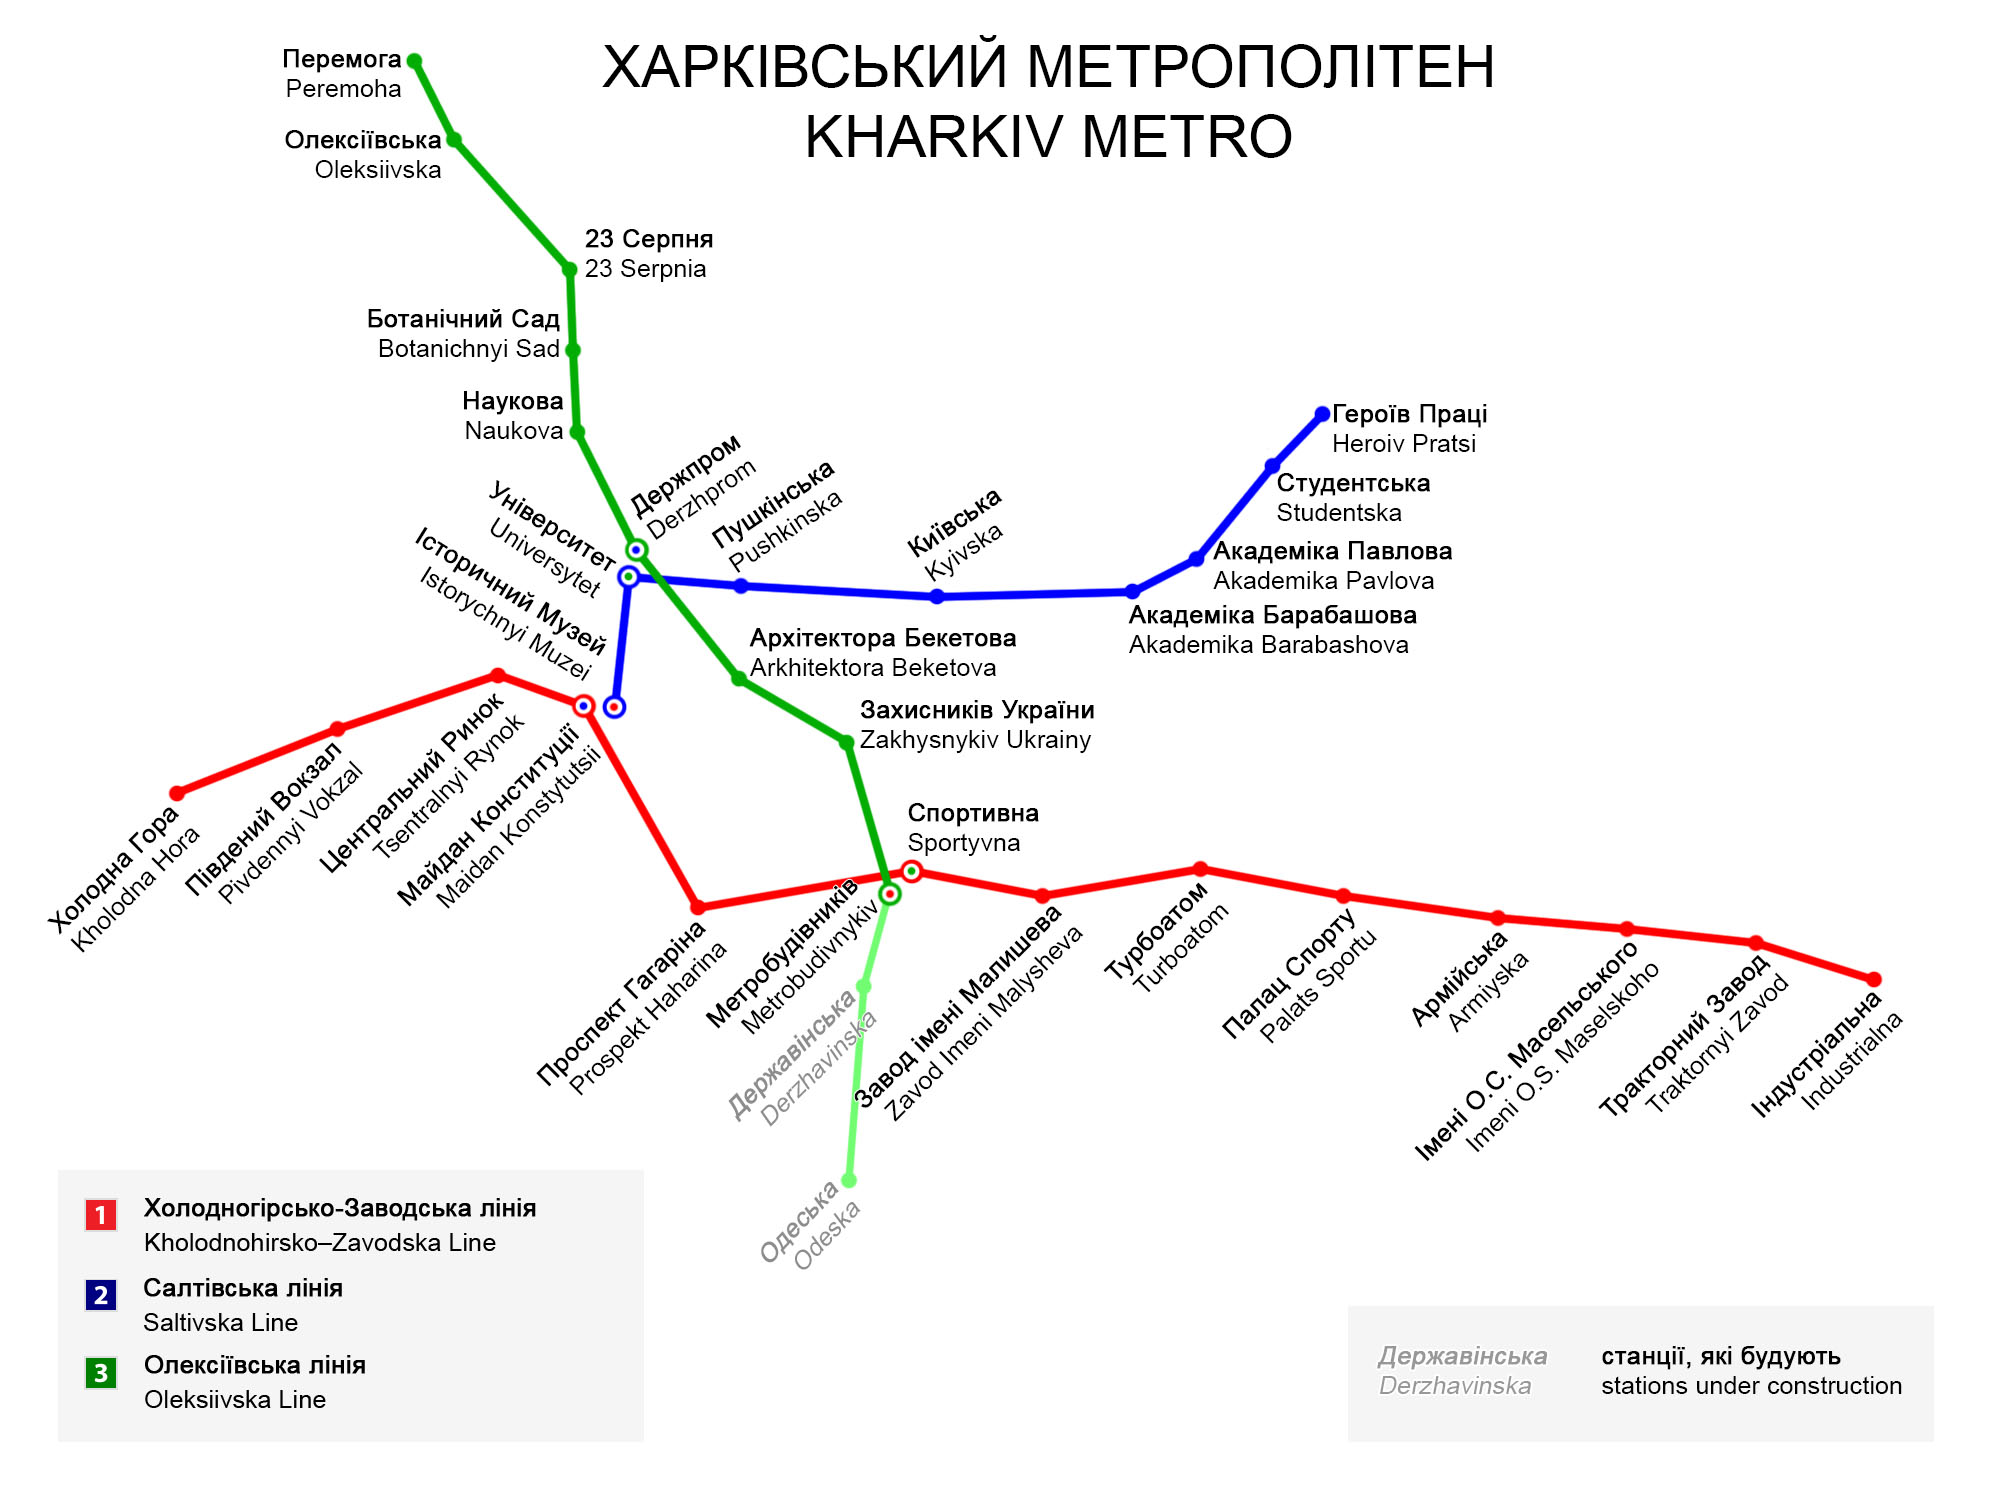 Seville Subway Map.Kharkiv Metro Wikipedia